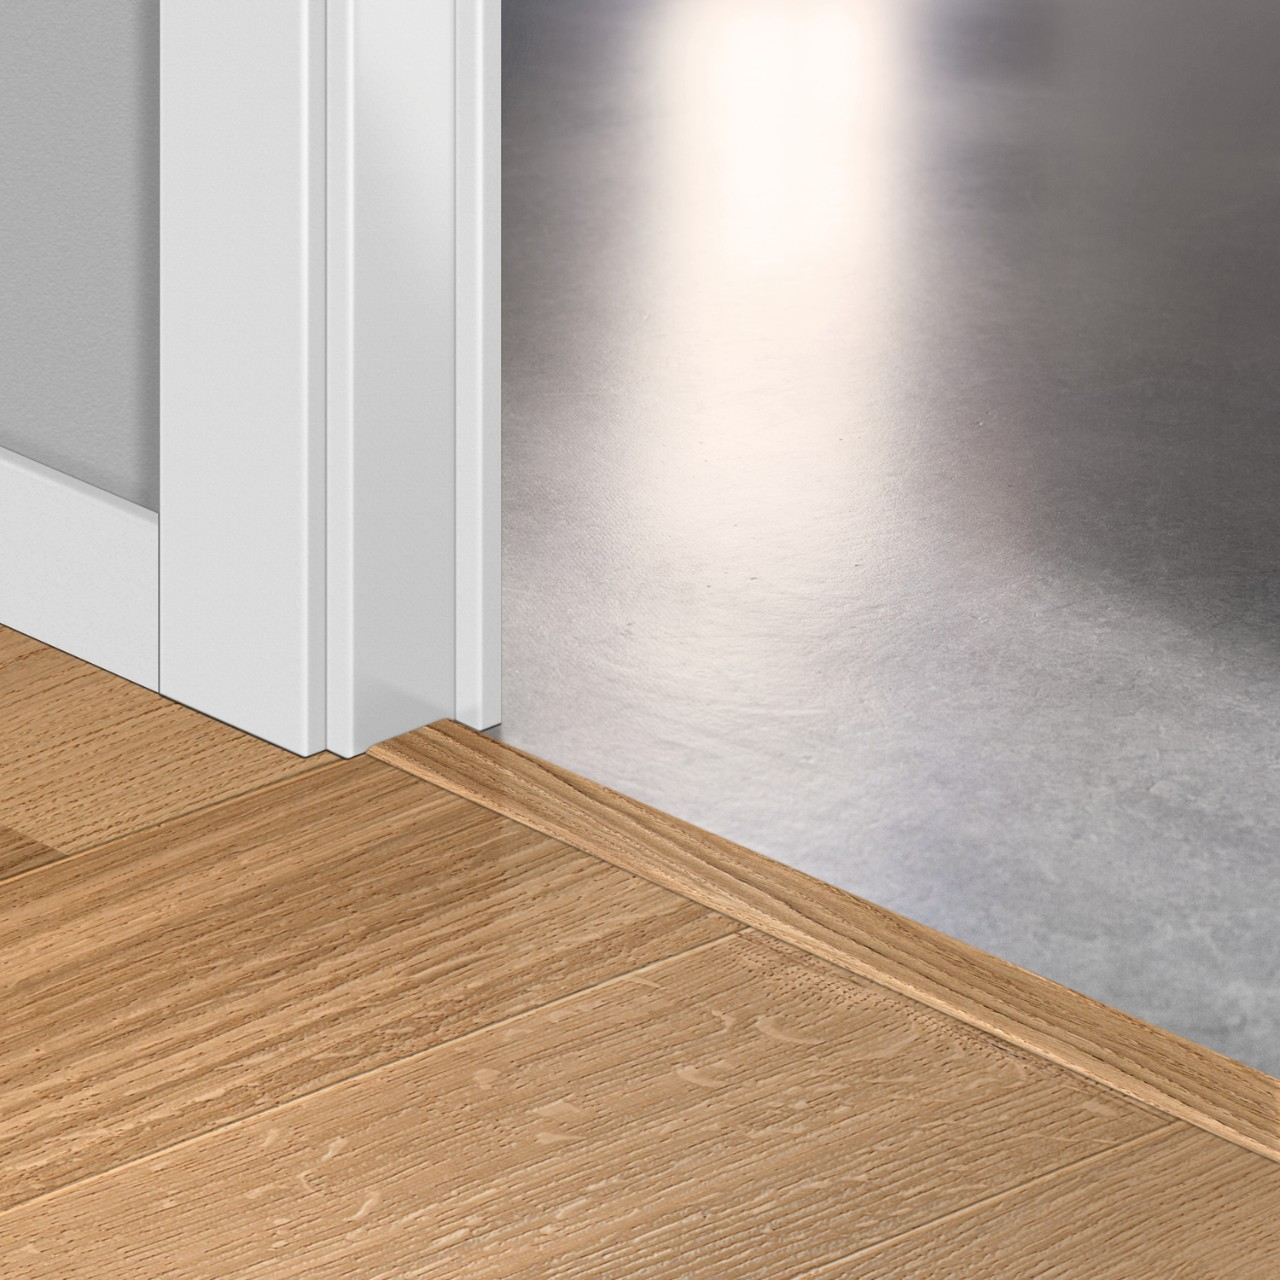 QSWINCP Parquet Accessories Incizo Profile (matching colour) QSWINCP01334